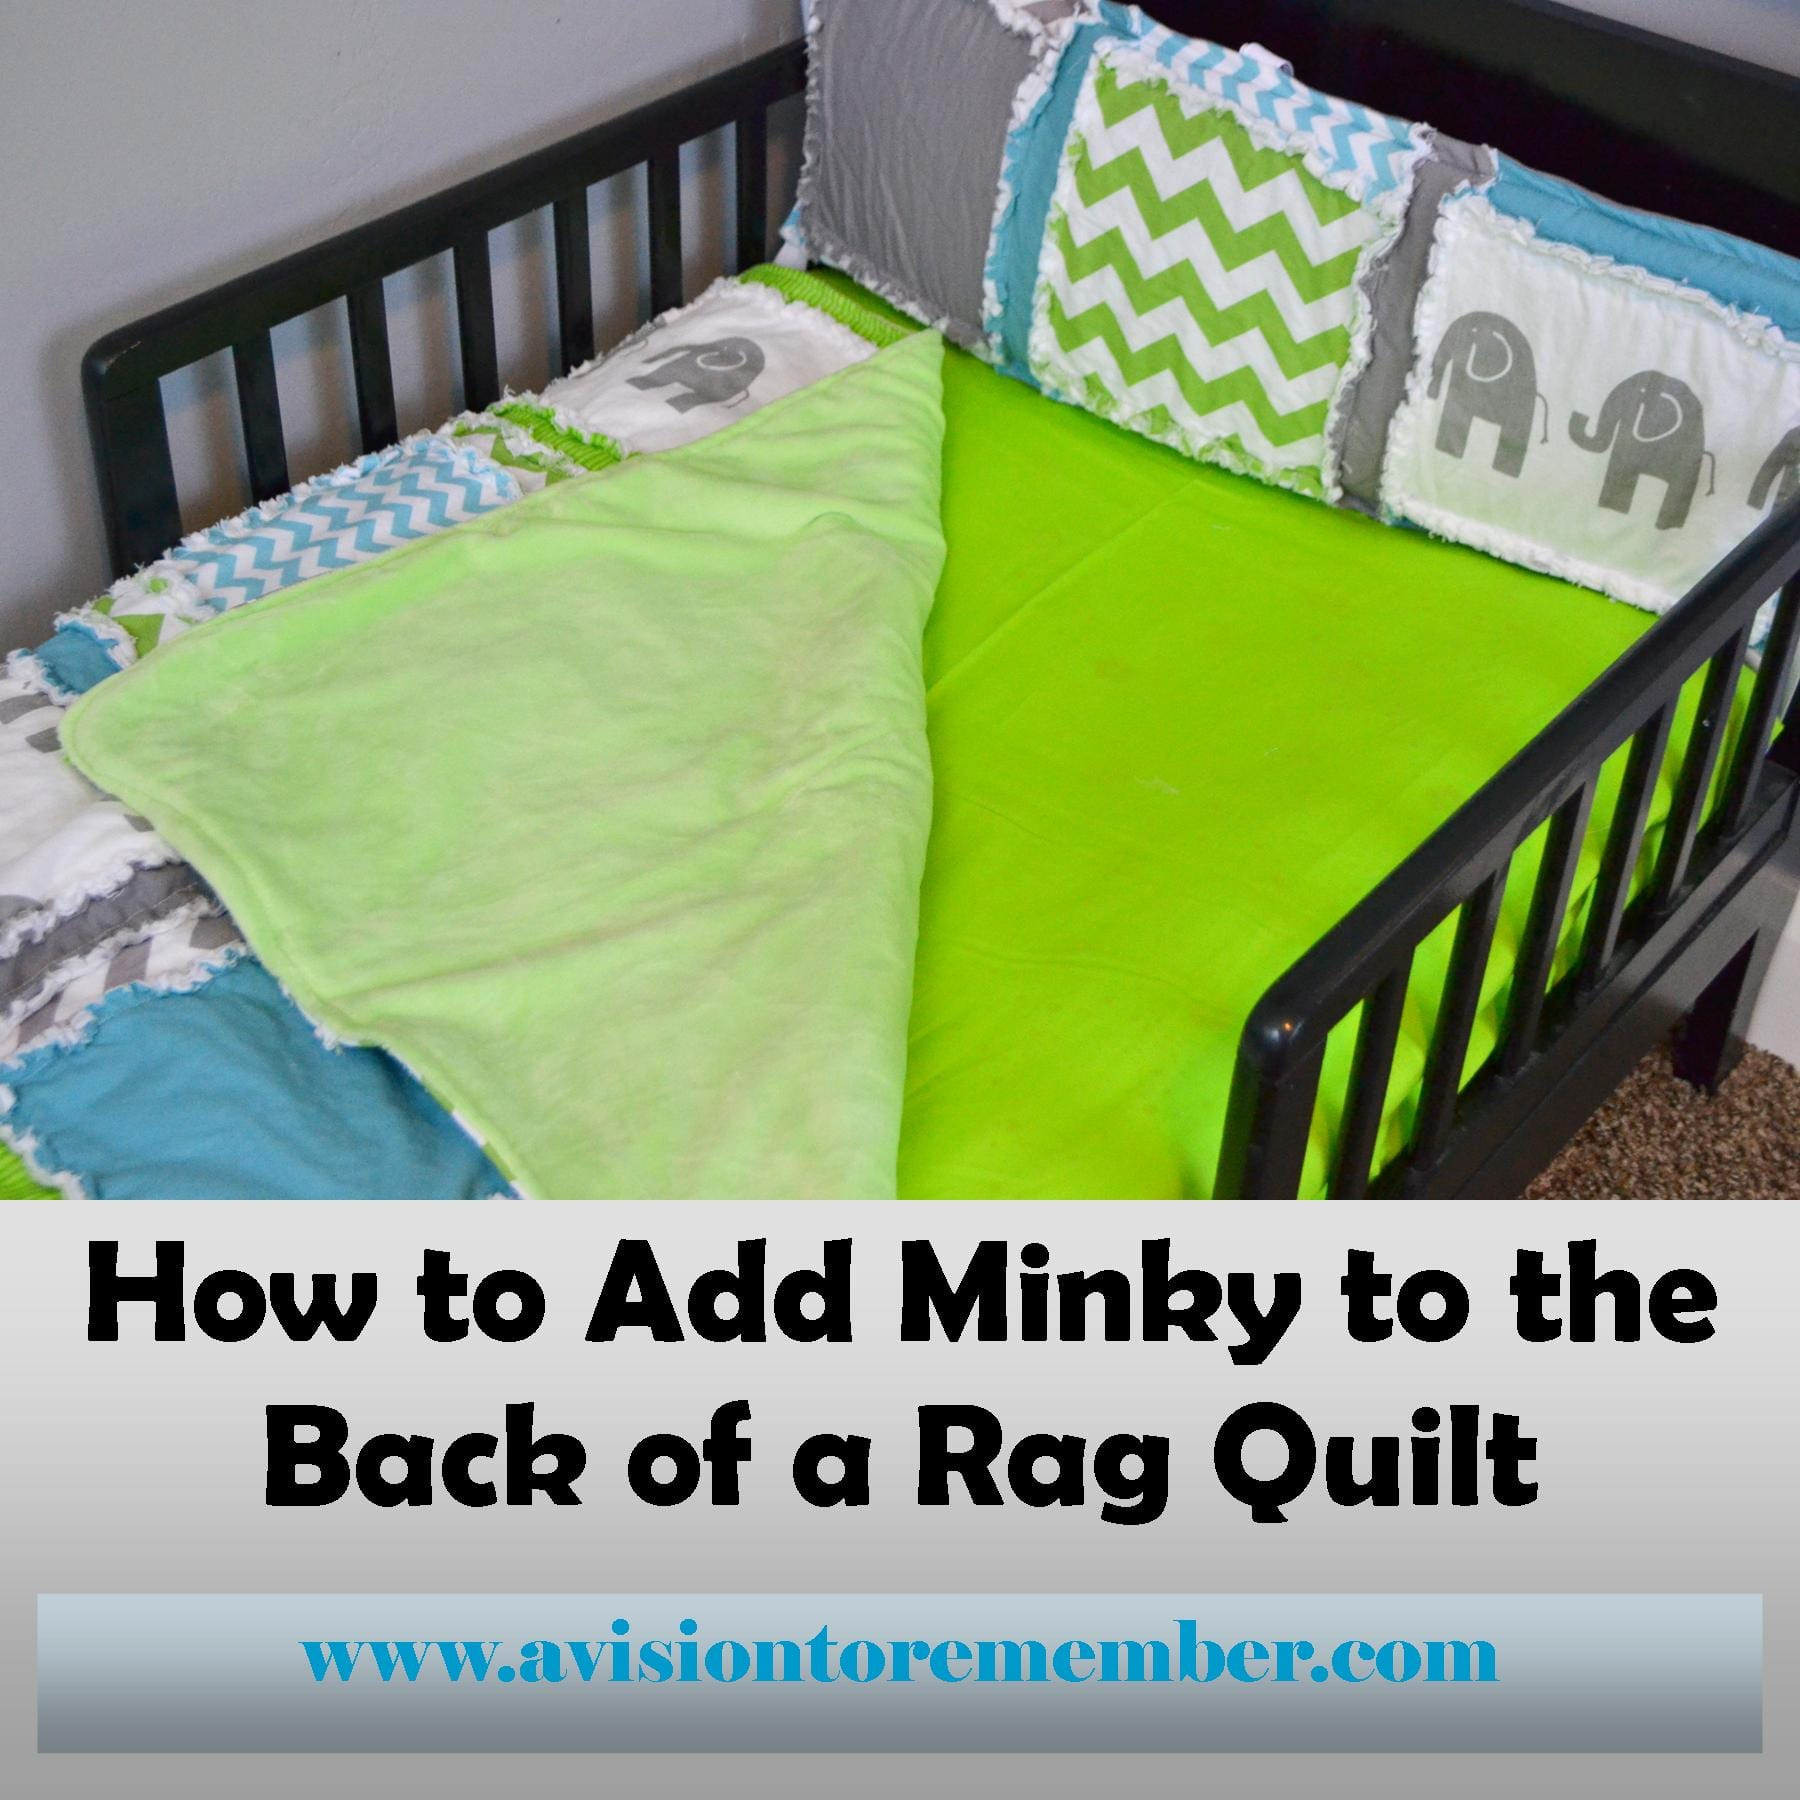 Add minky to rag quilts tutorial - Sewing 4 Free